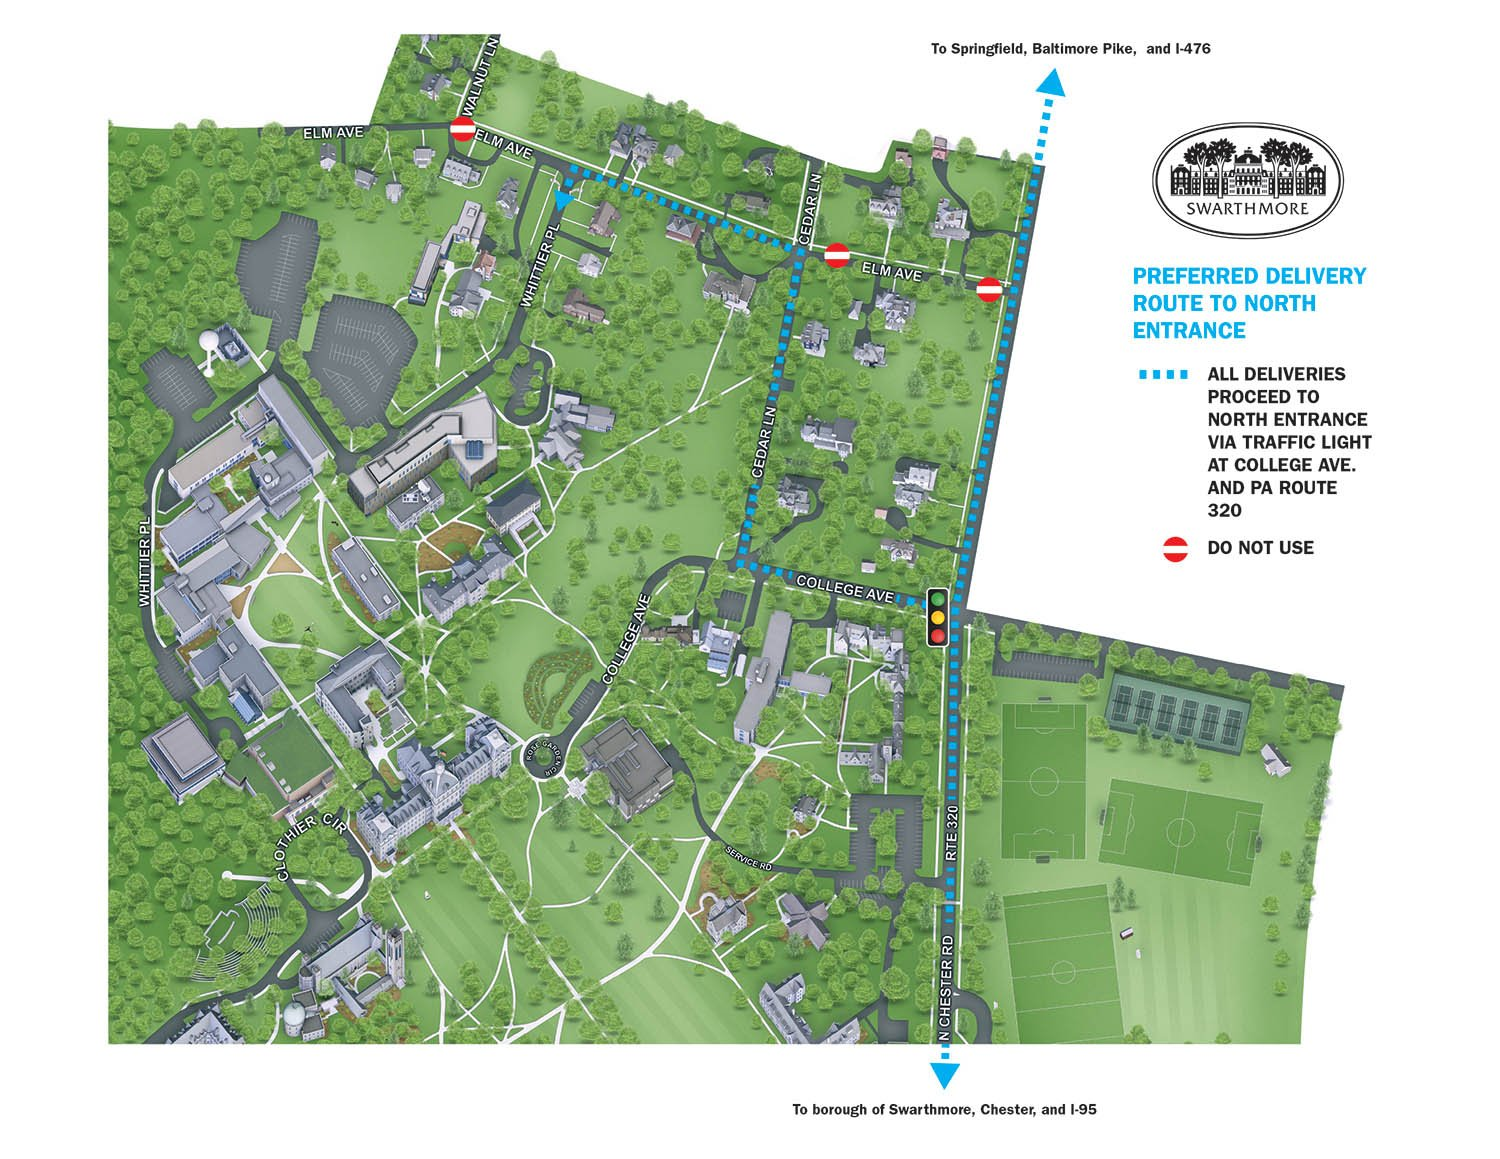 Swarthmore Campus Map For Suppliers :: Purchasing Office :: Swarthmore College